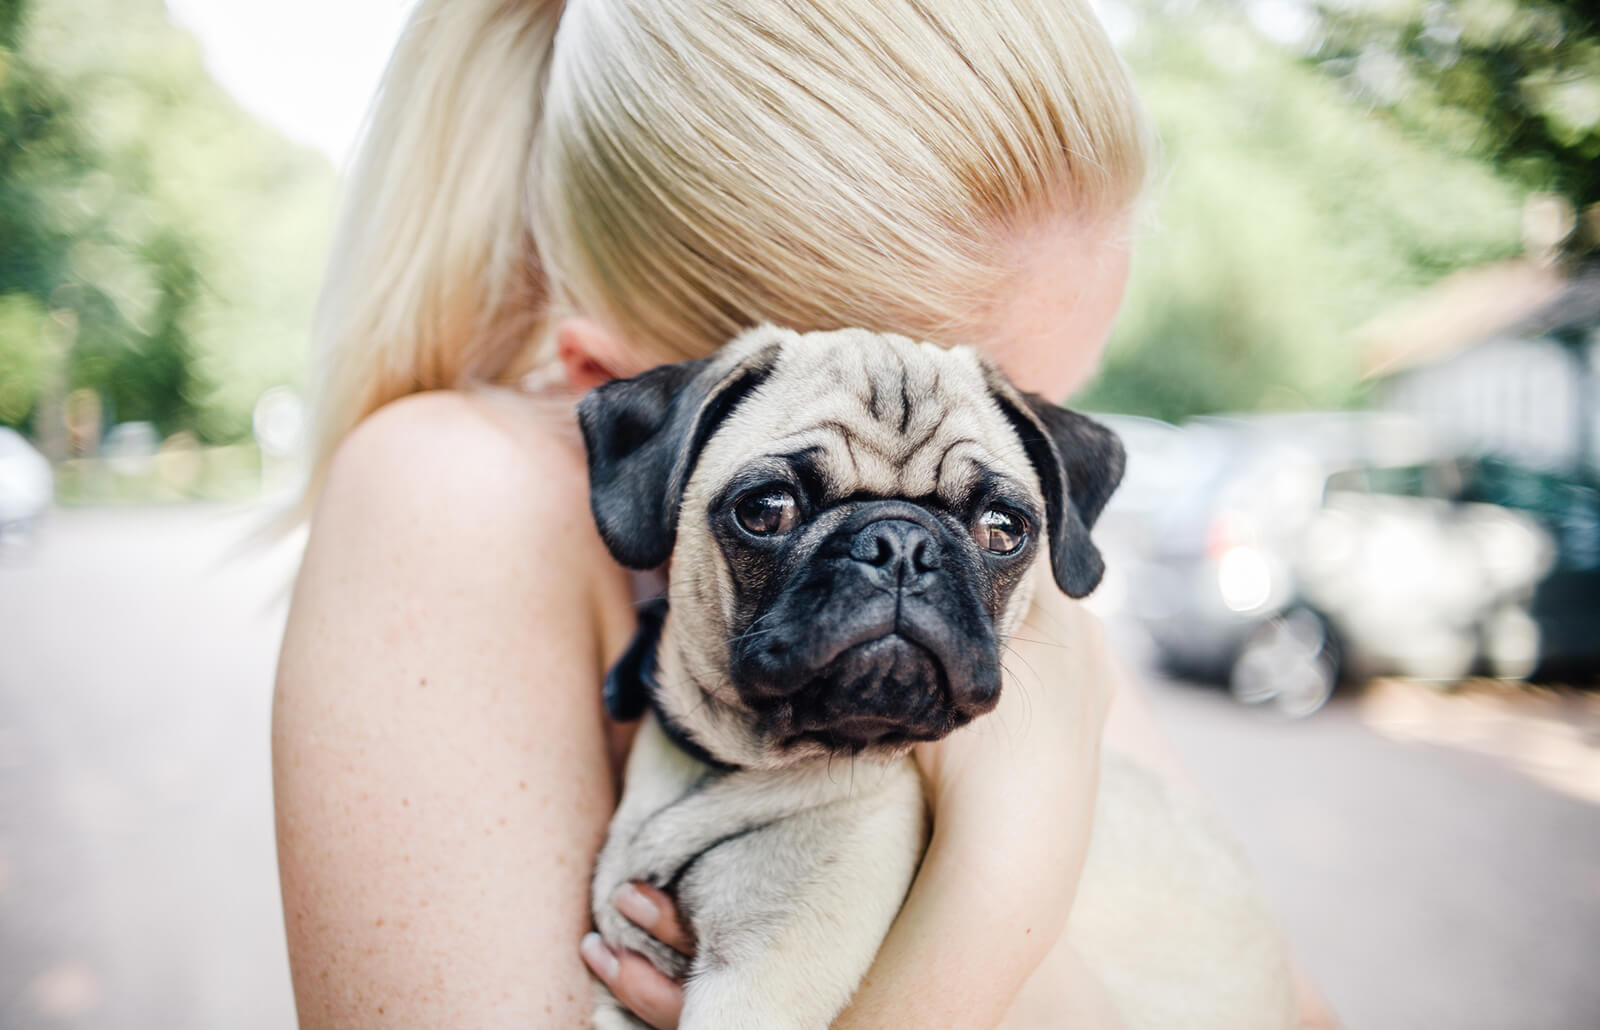 Pug dating guide